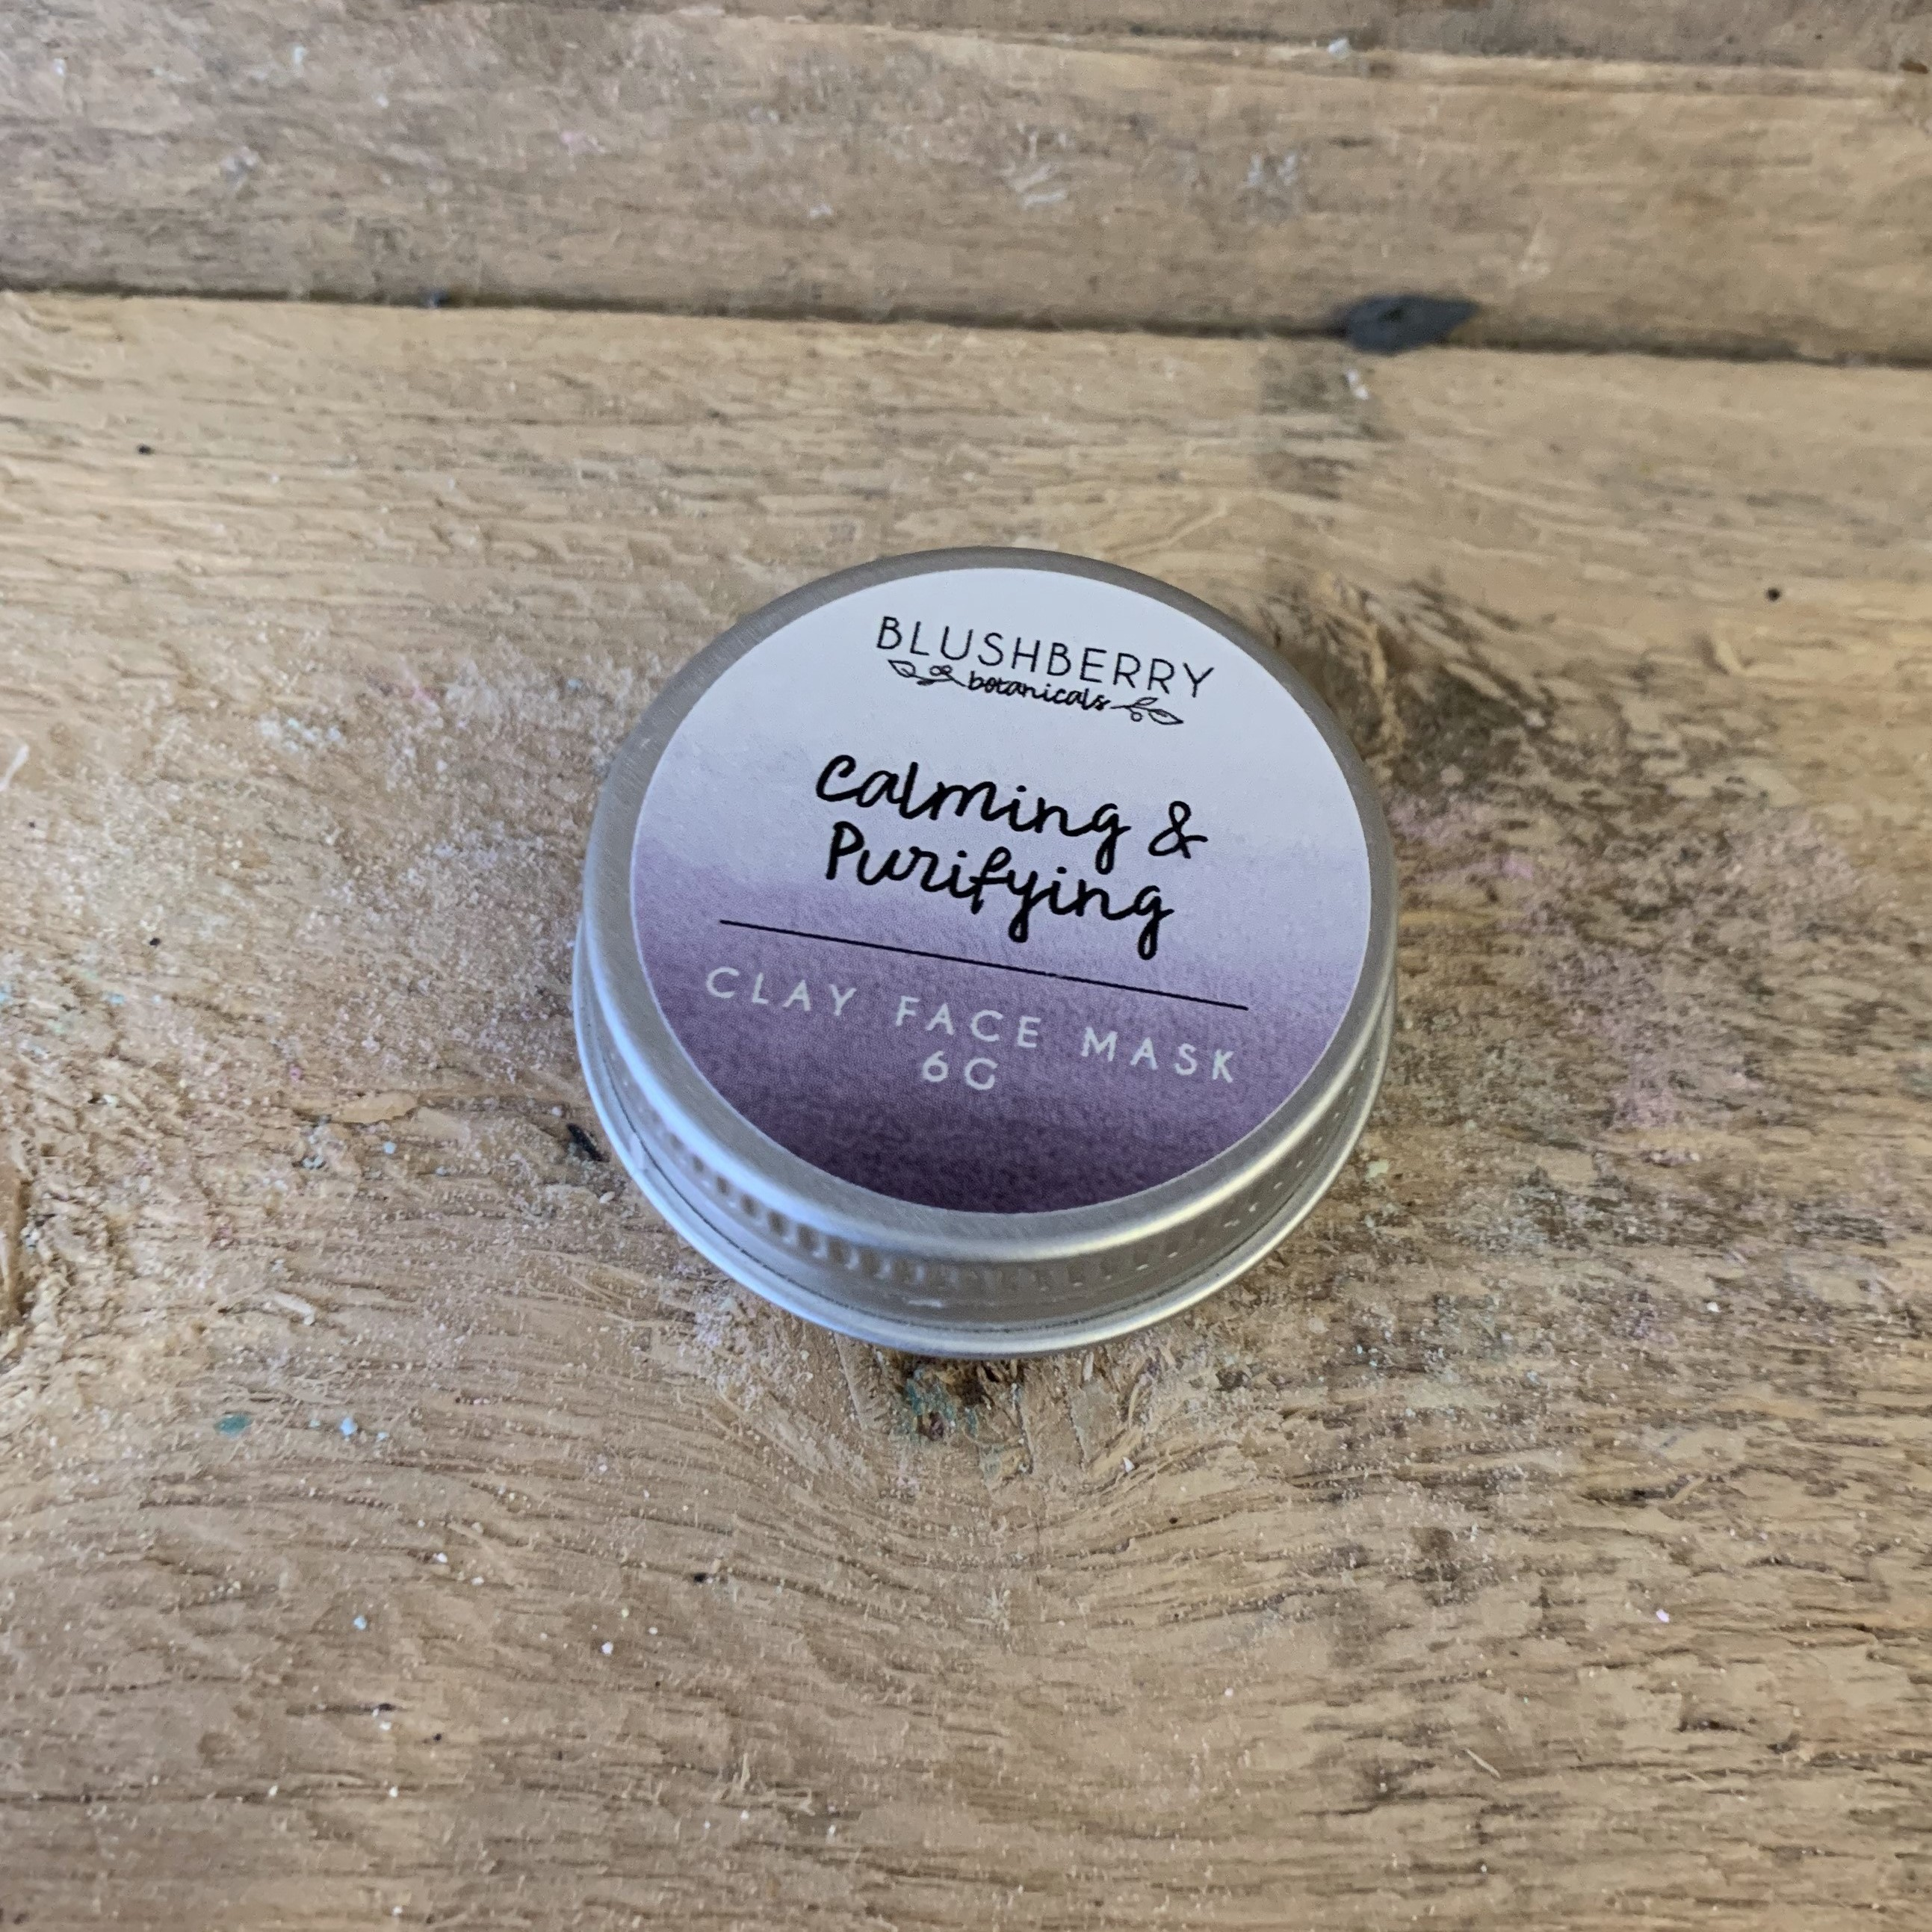 Calming and Purifying Blushberry Botanicals Clay Face Mask